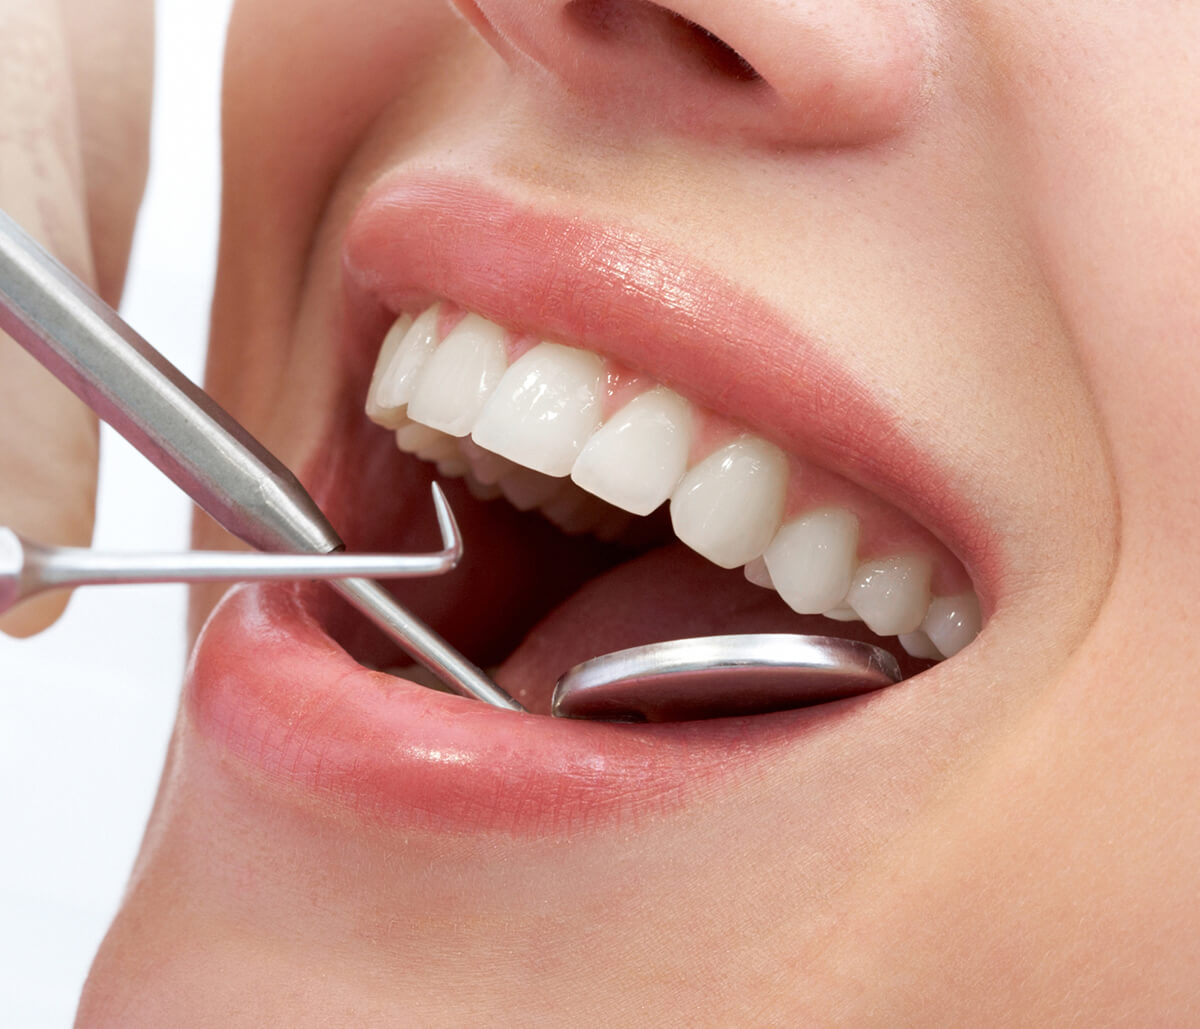 Houston, TX dentist explains the root canal procedure process.